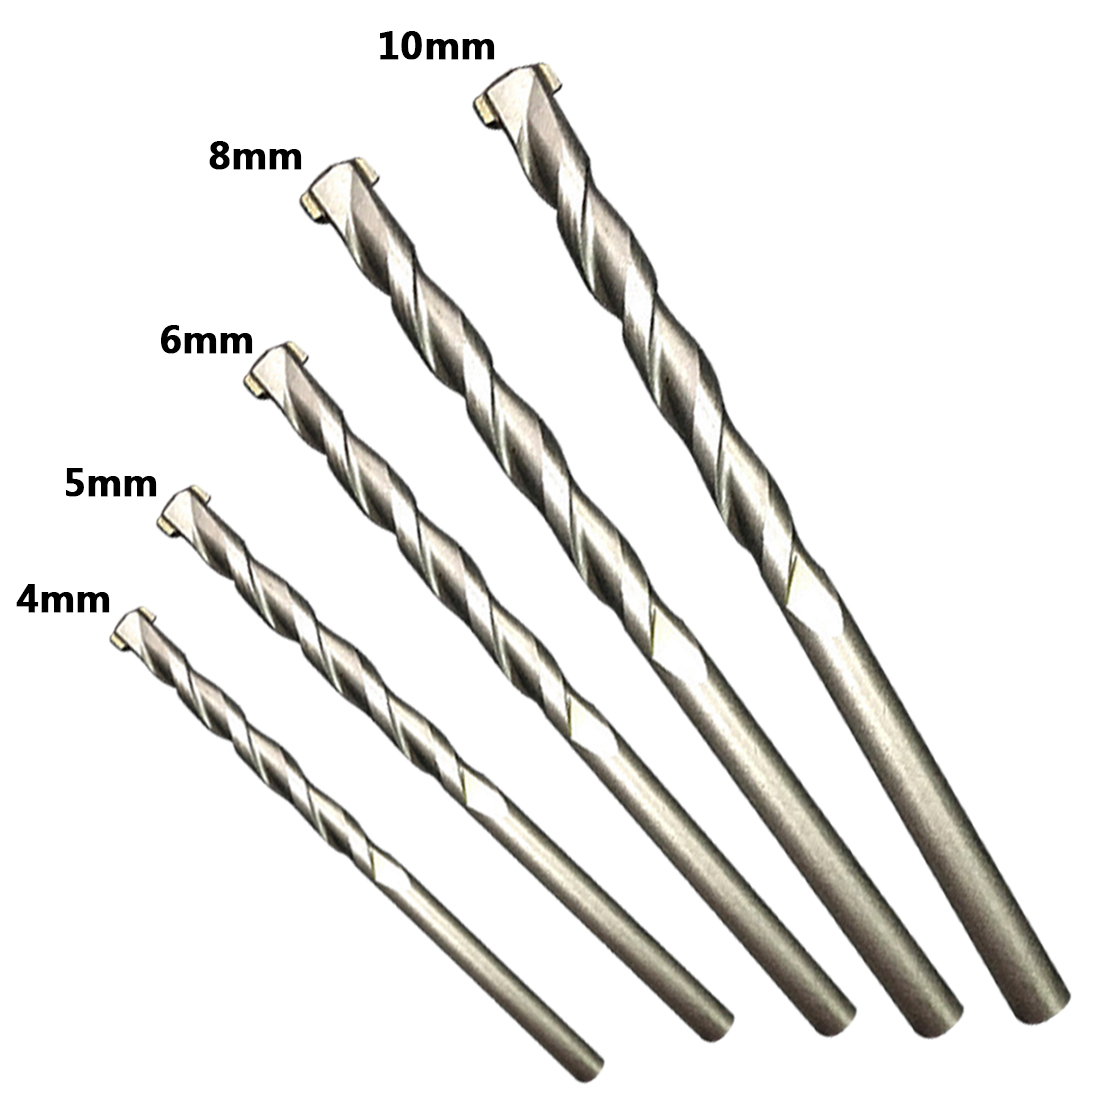 6.2mm 1 Pc Titanium Coated Profestional Straight Shank Twist HSS Drill Bits New